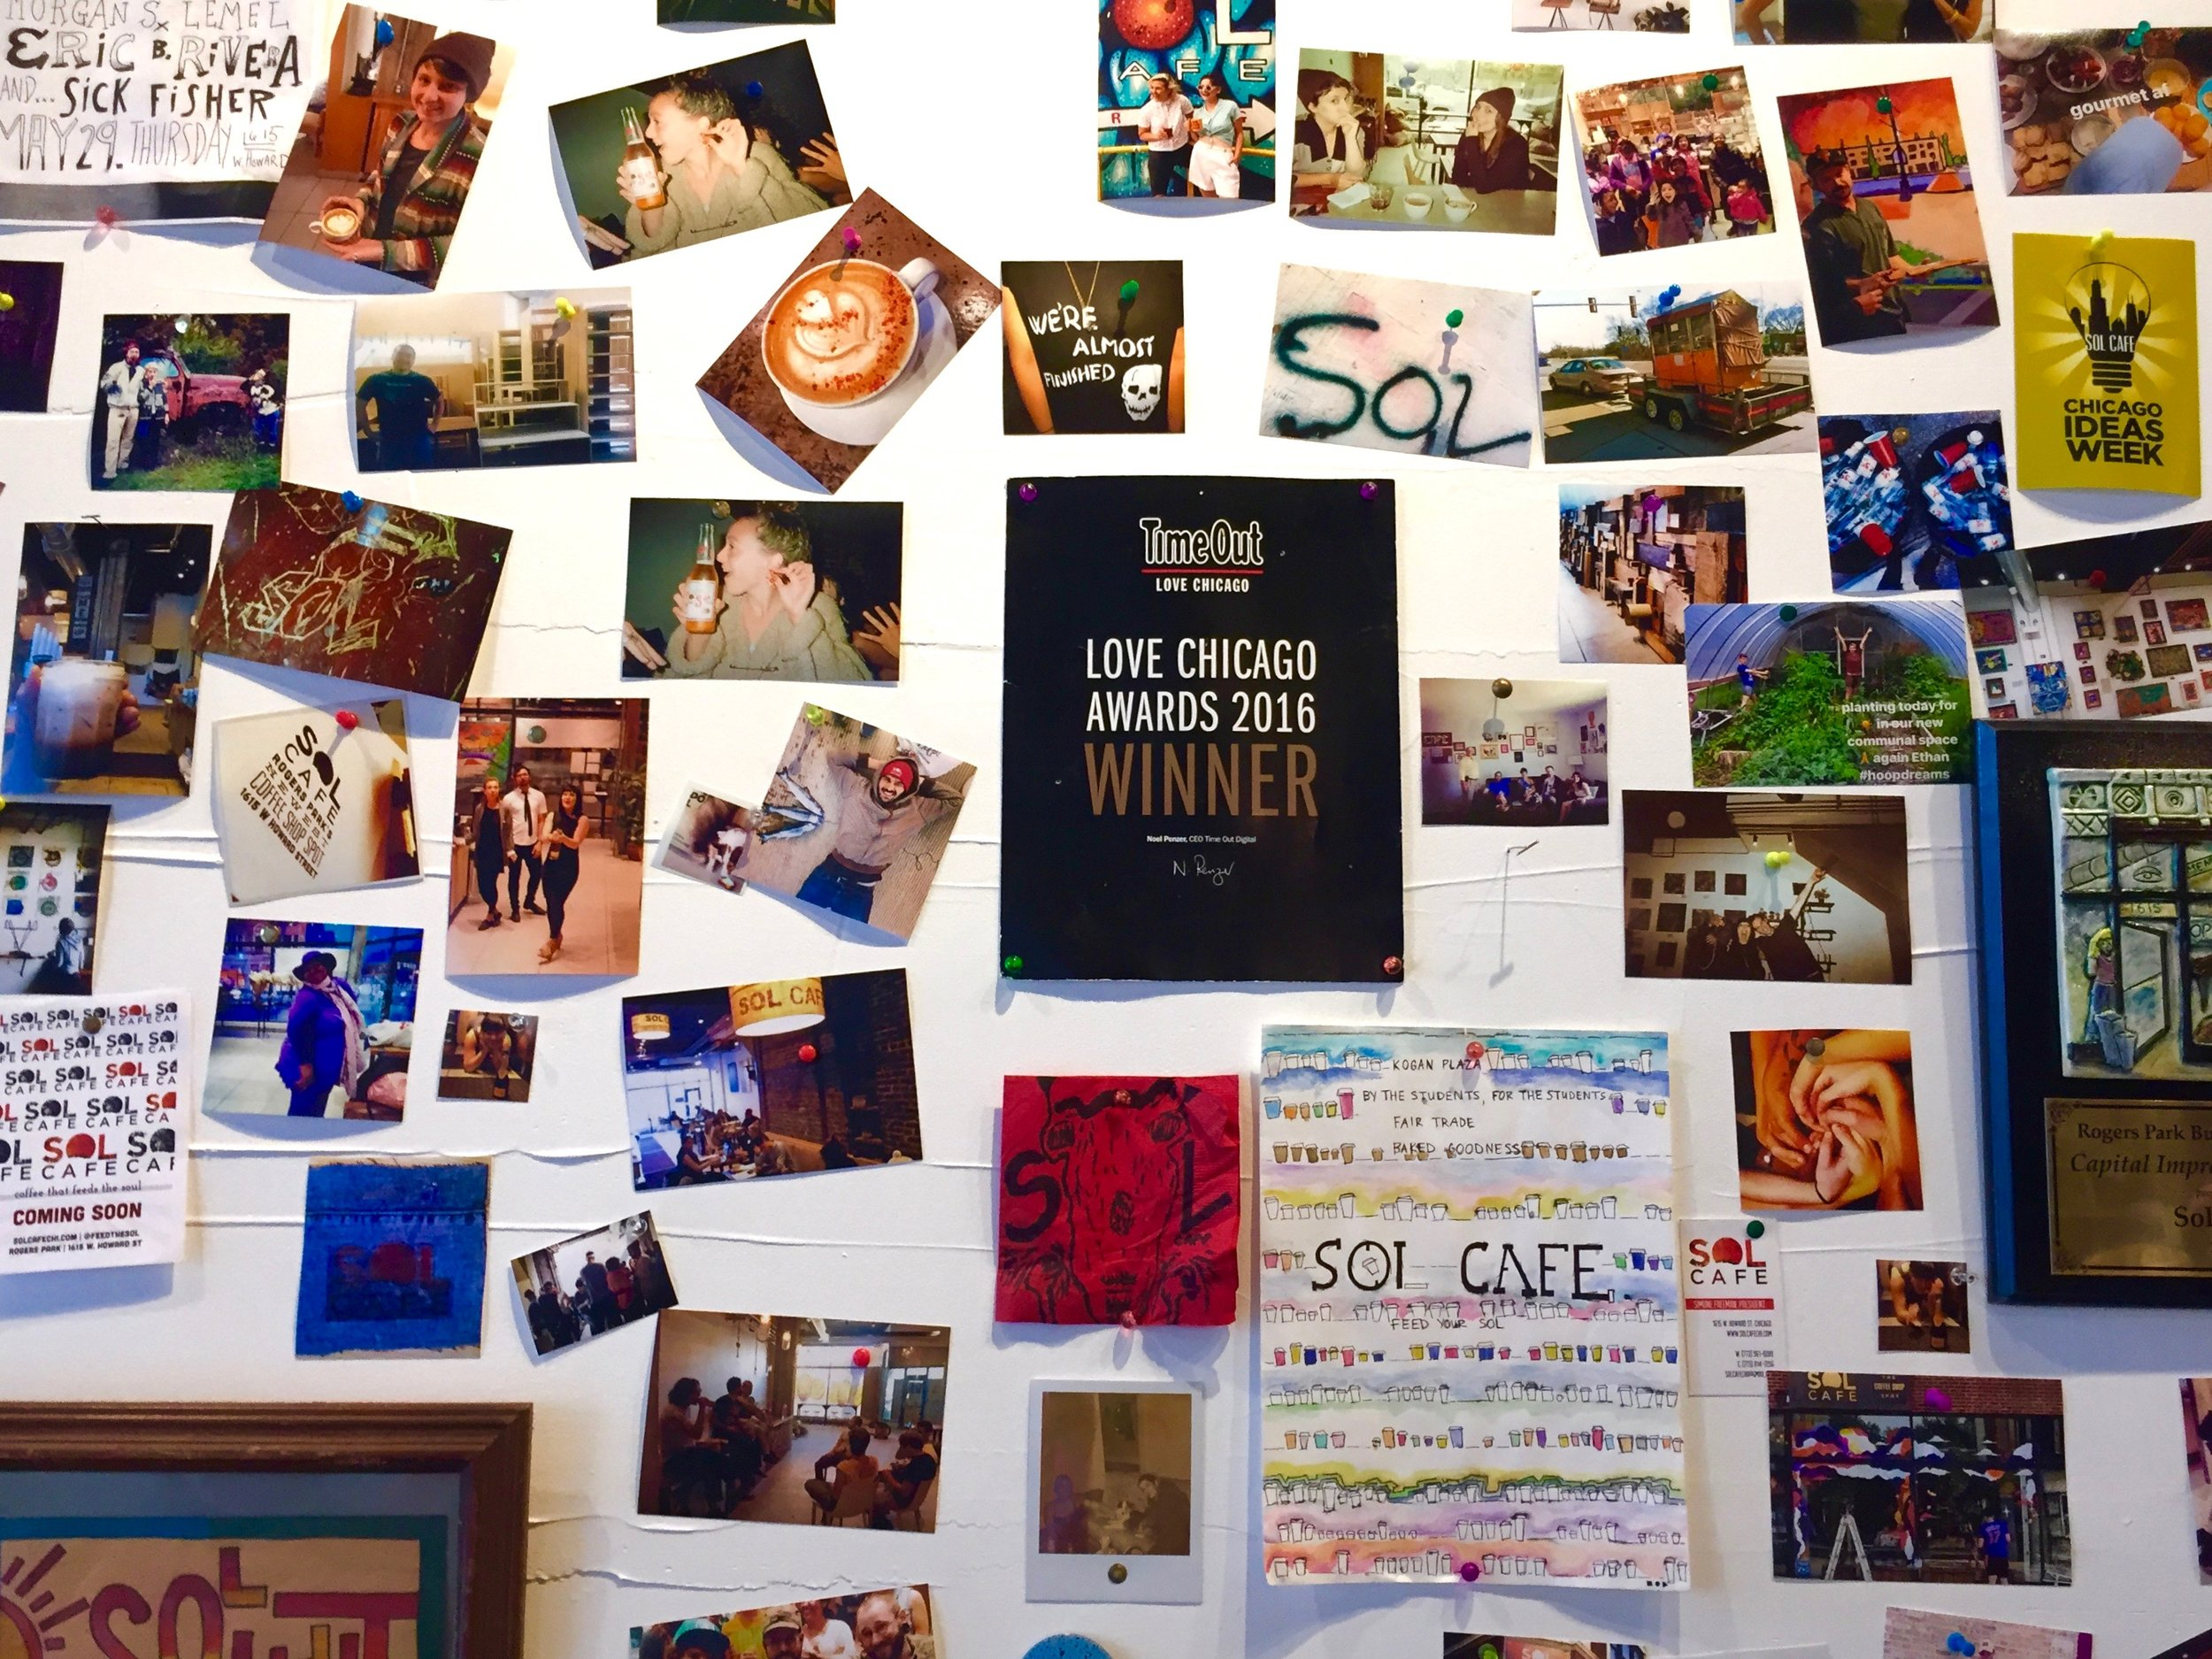 Sol Cafe women owned business